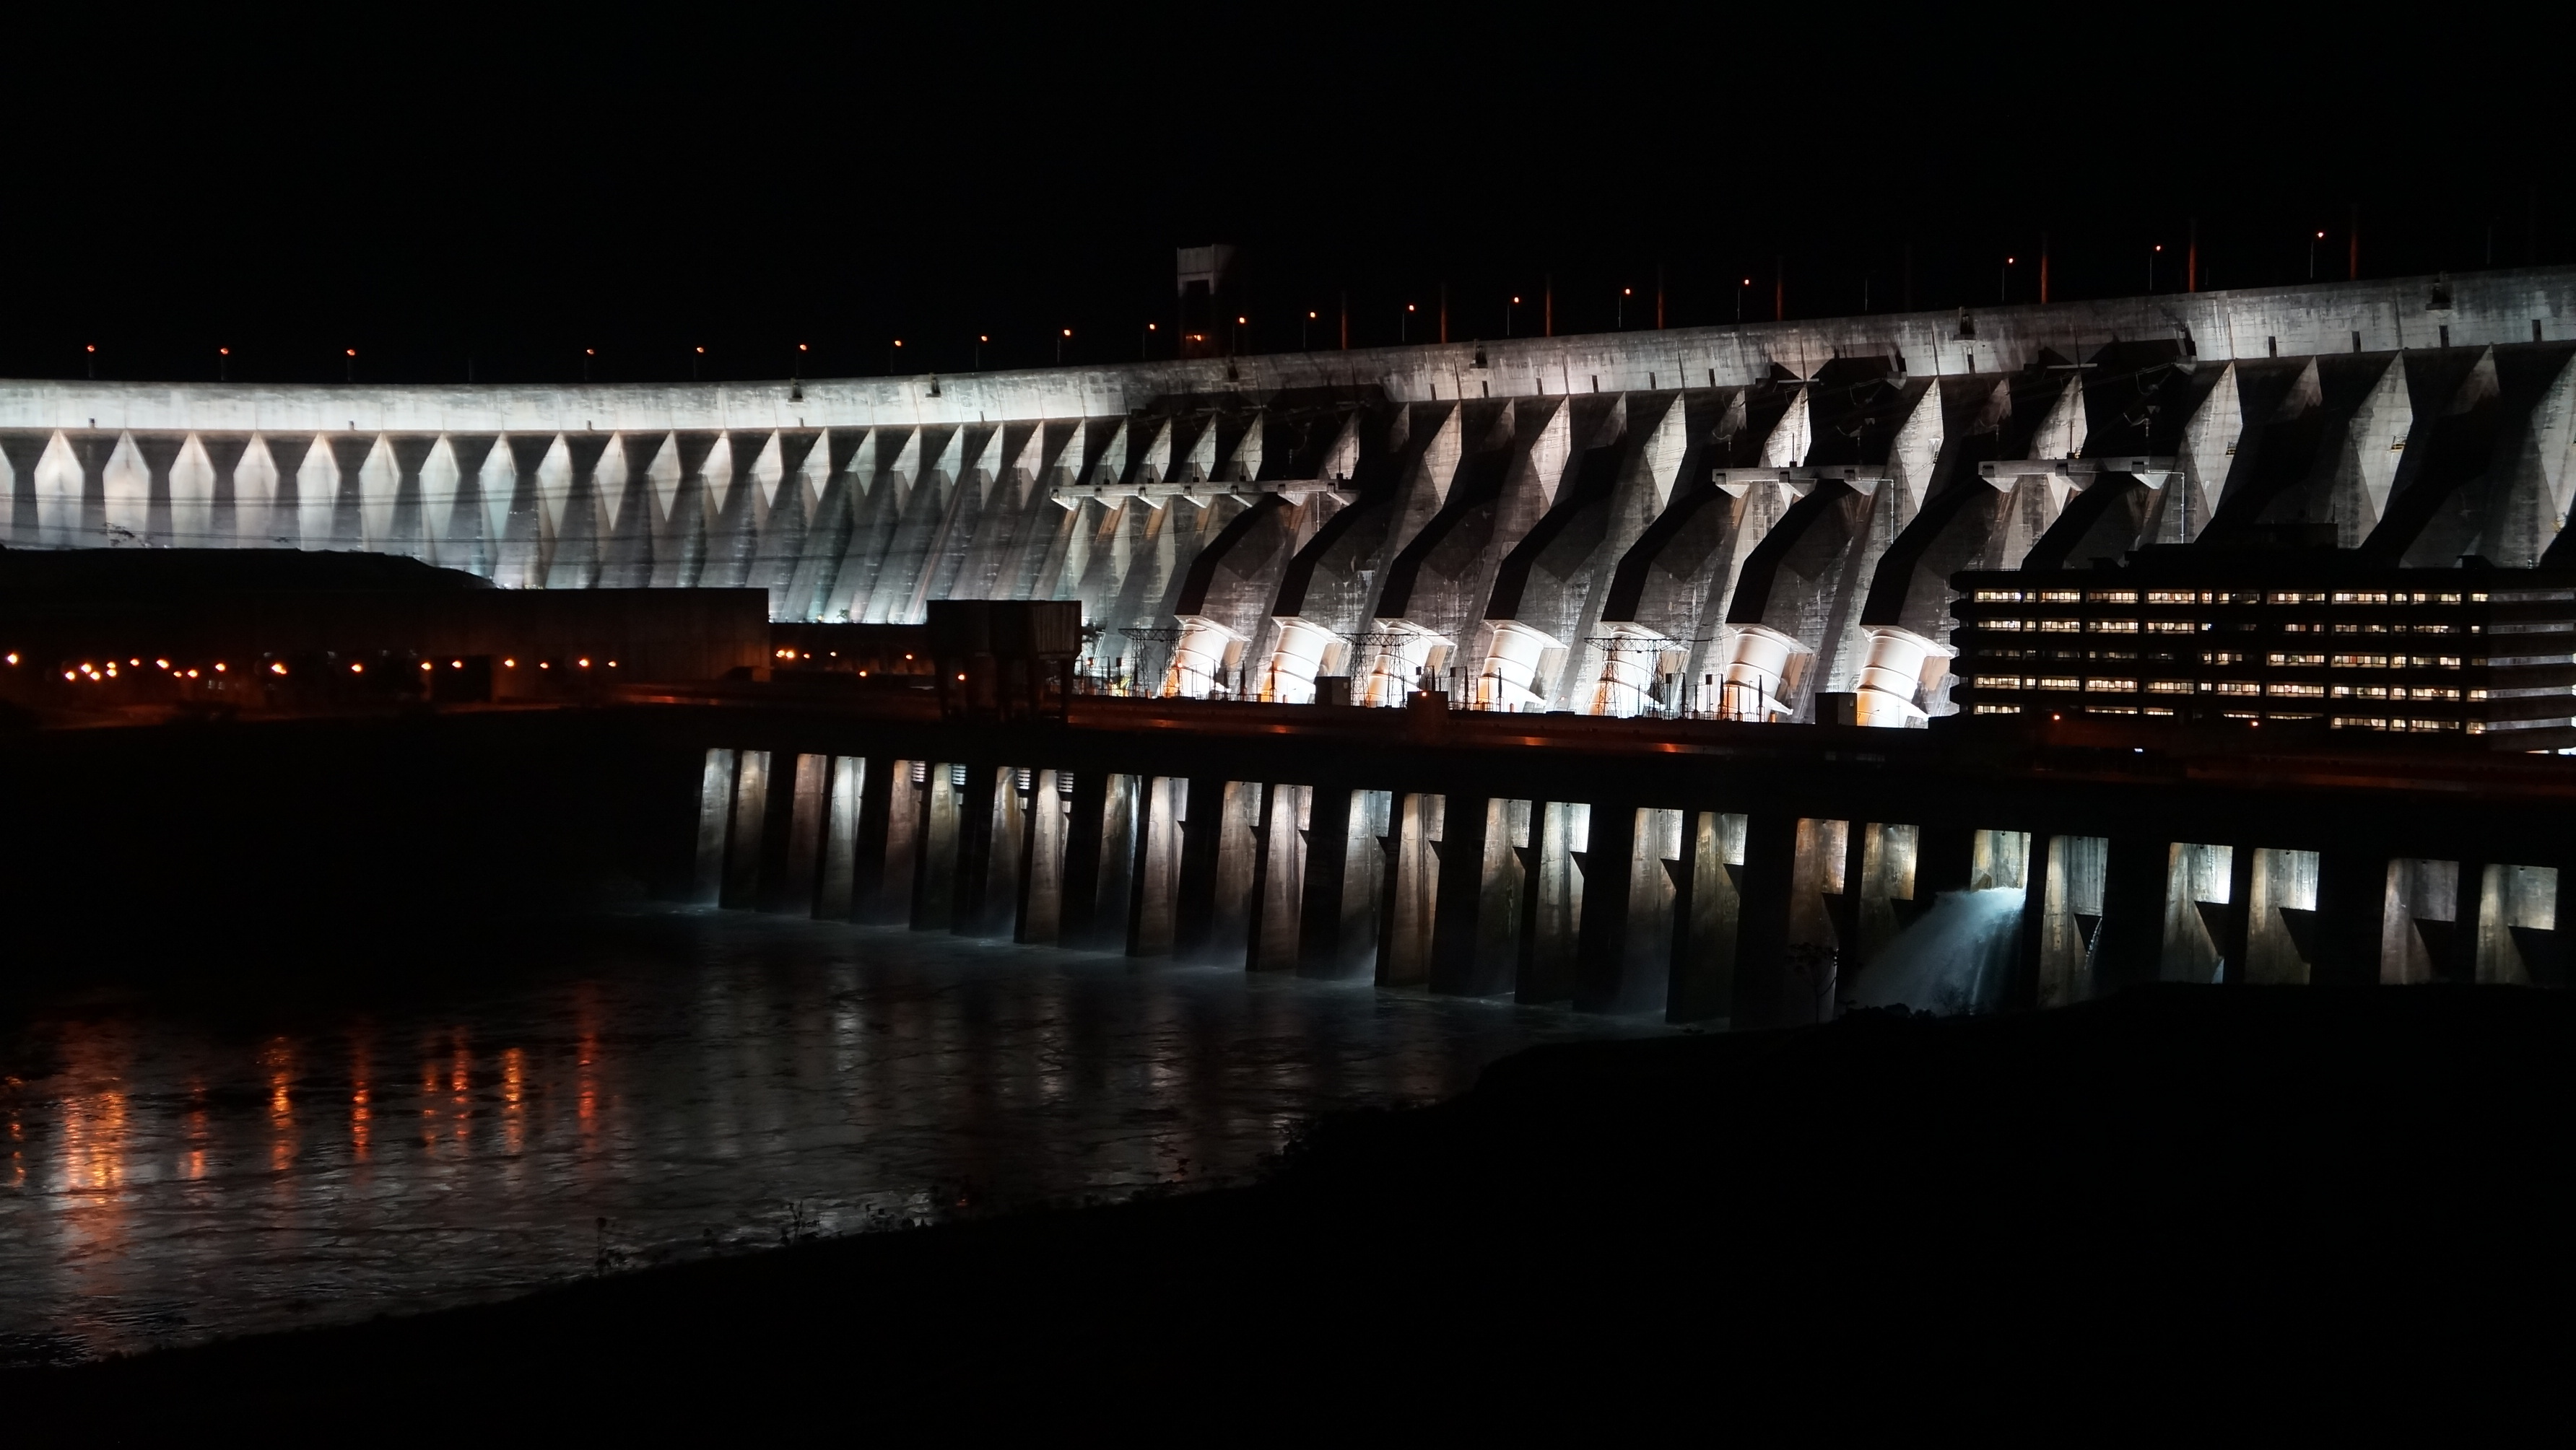 Time to celebrate a great view of the prominent Itaipu